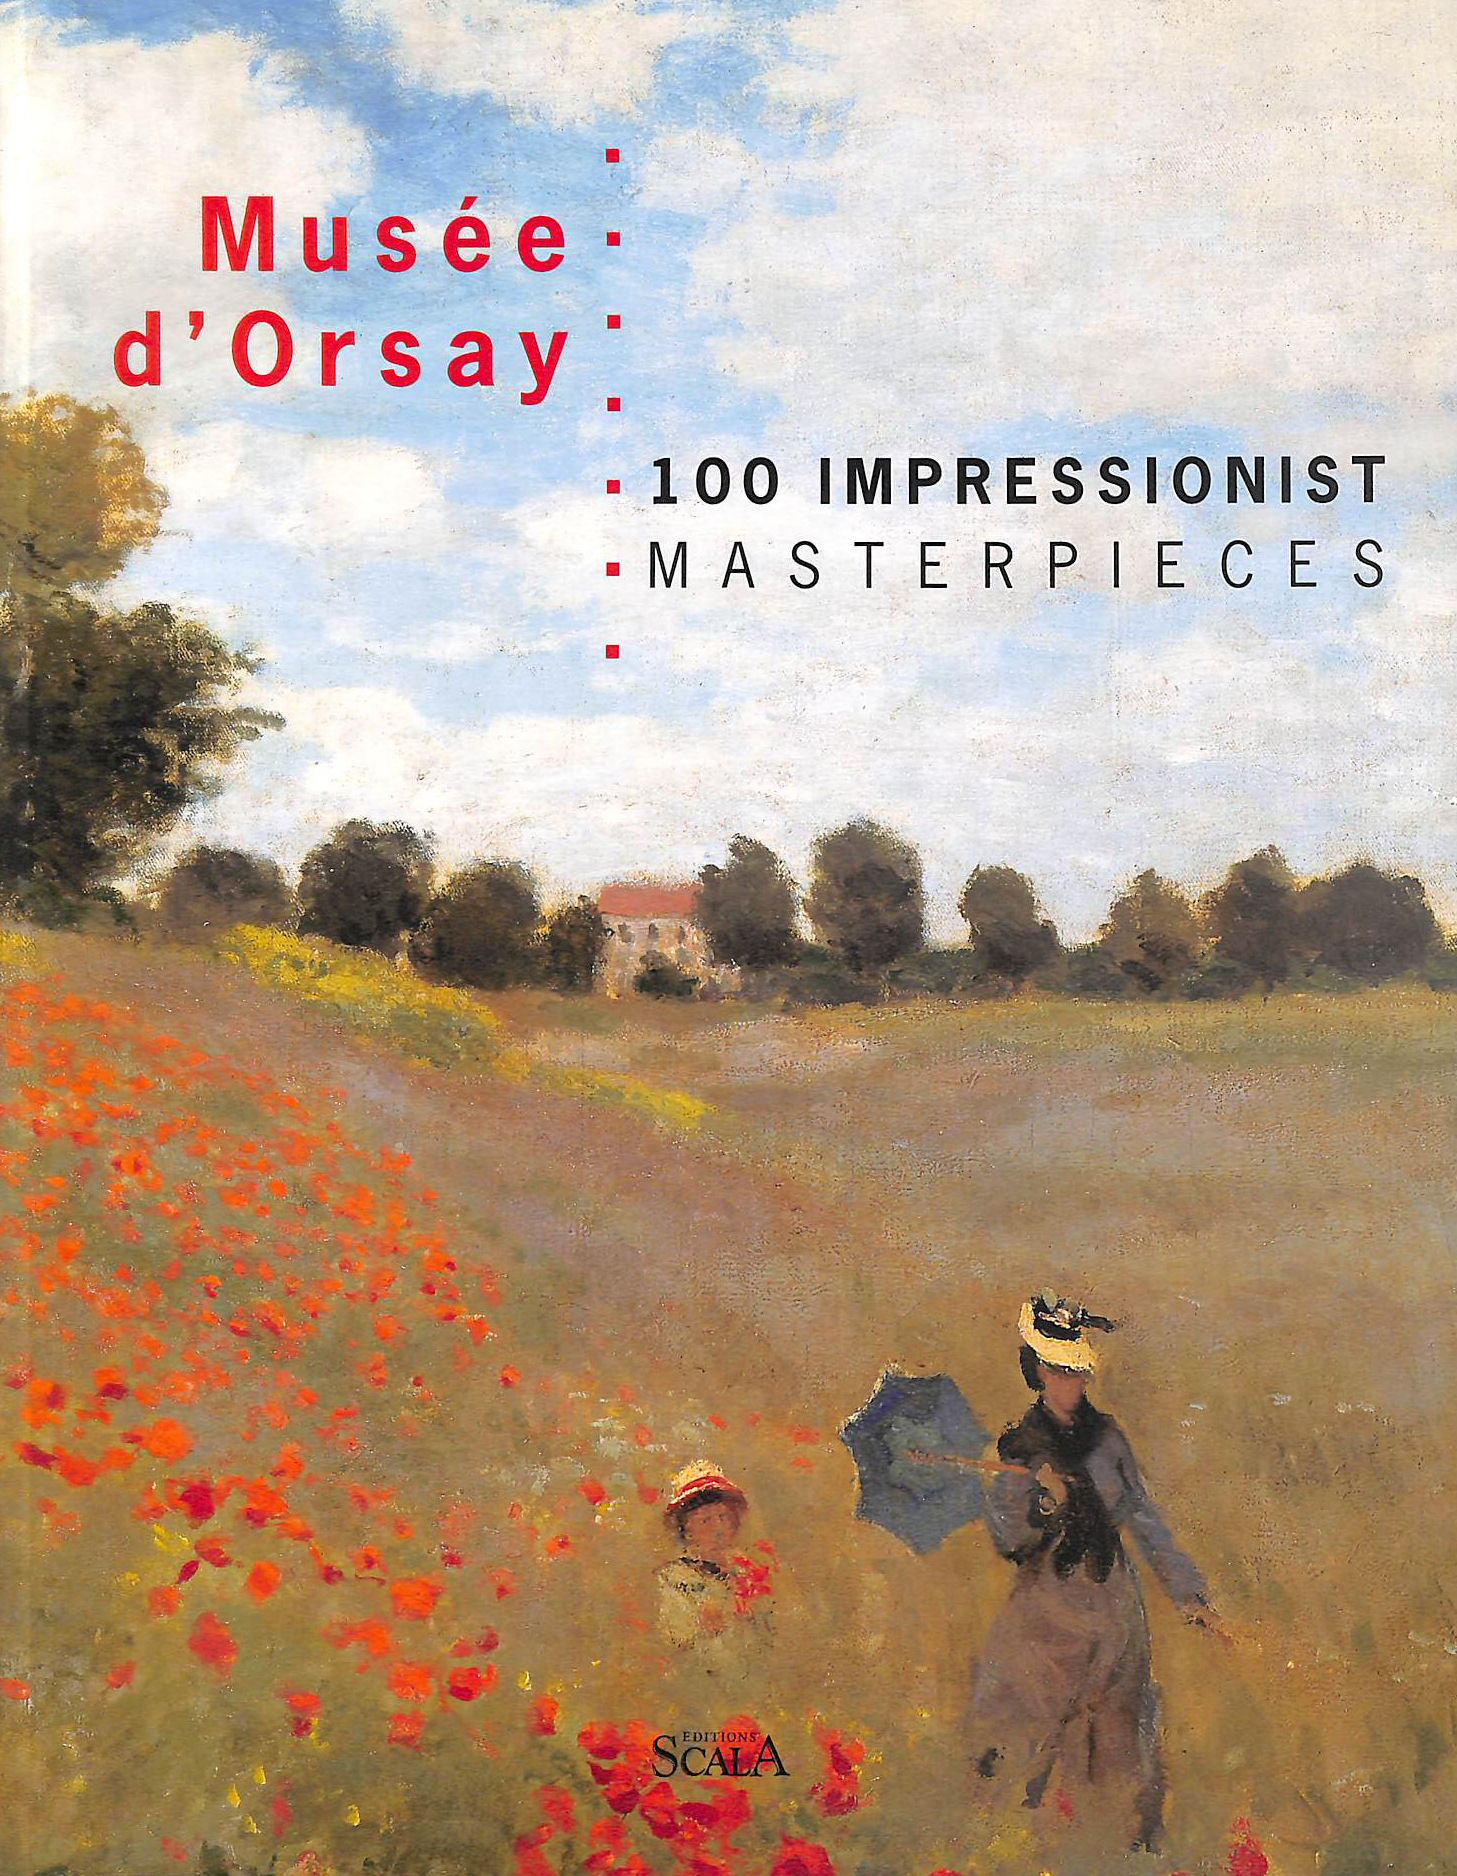 Image for Musee d'Orsay, 100 Impressionist Masterpieces